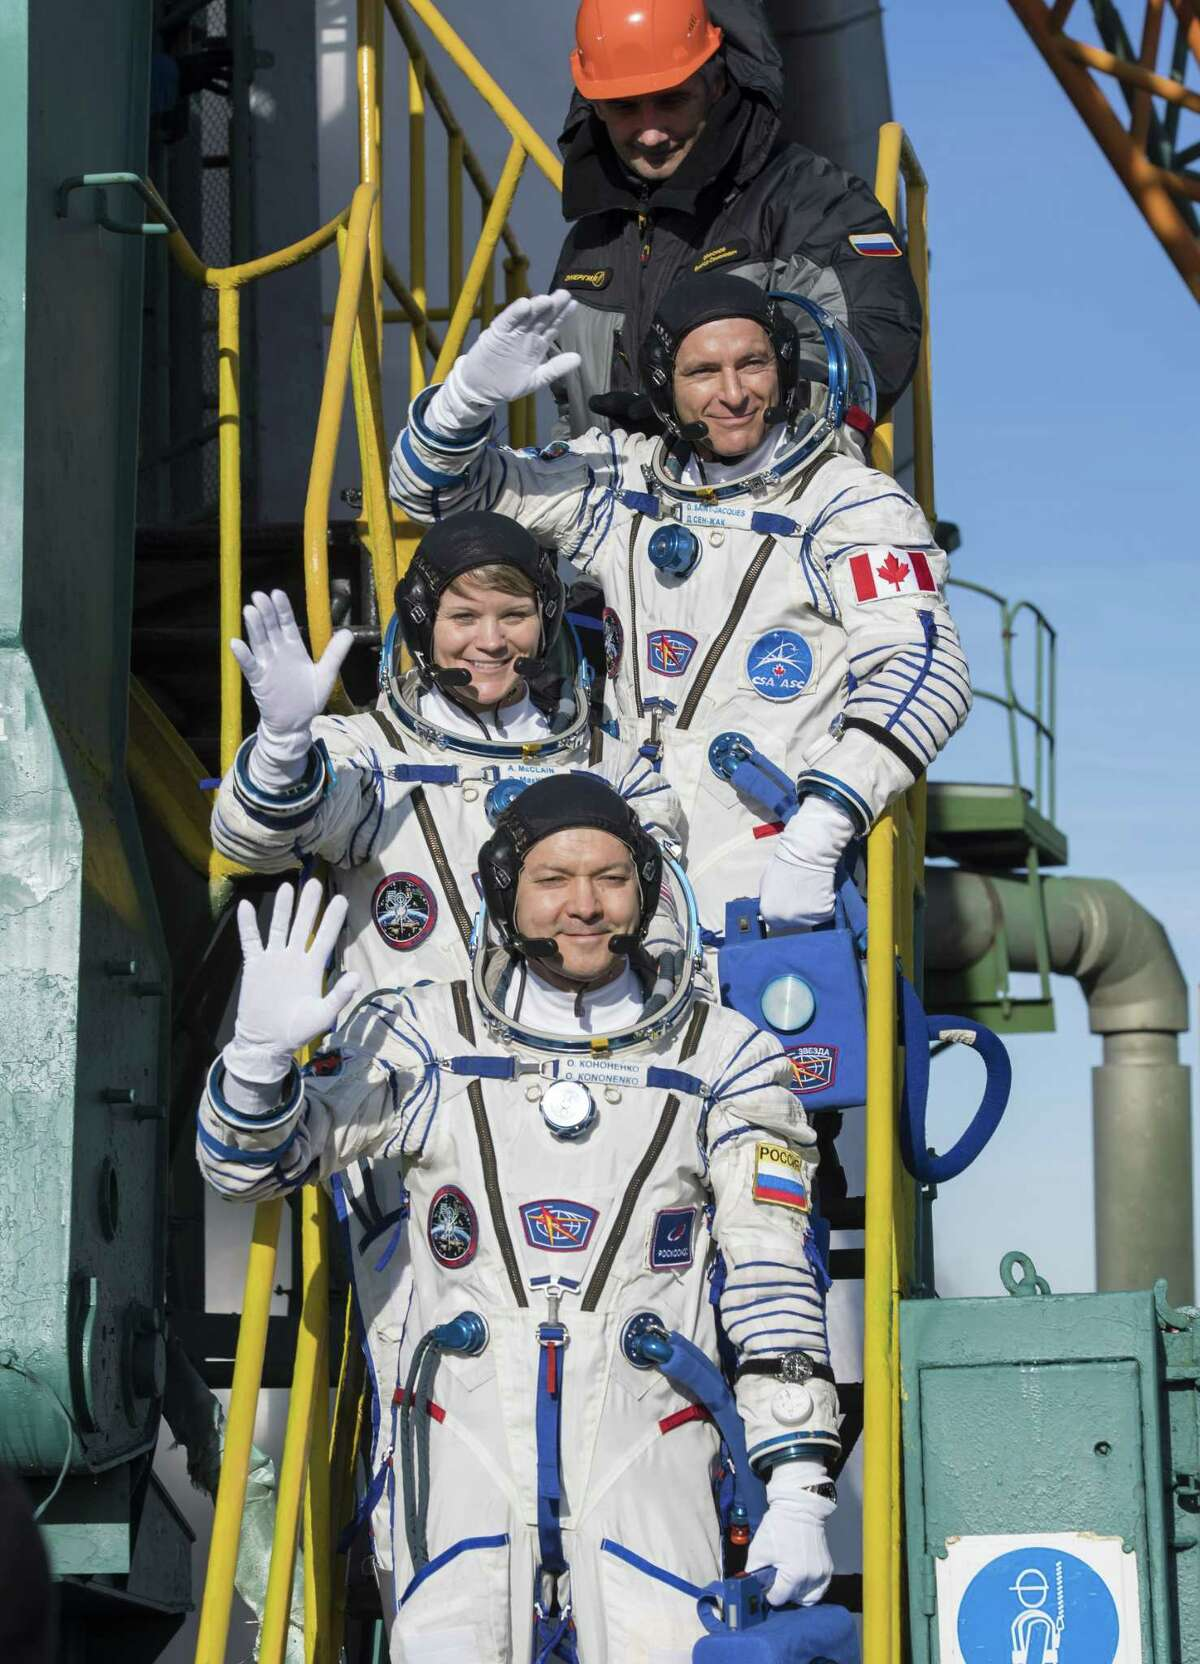 In this handout provided by NASA, Expedition 58 Flight Engineer David Saint-Jacques of the Canadian Space Agency (CSA), (top), Flight Engineer Anne McClain of NASA (C) and Soyuz Commander Oleg Kononenko of Roscosmos, (bottom), wave farewell prior to boarding the Soyuz MS-11 spacecraft for launch at the Baikonur Cosmodrome on December 3, 2018 in Baikonur, Kazakhstan. Launch of the Soyuz rocket is scheduled for December 3 and will carry Expedition 58 Soyuz Commander Oleg Kononenko of Roscosmos, Flight Engineer Anne McClain of NASA, and Flight Engineer David Saint-Jacques of the Canadian Space Agency (CSA) into orbit to begin their six and a half month mission on the International Space Station.